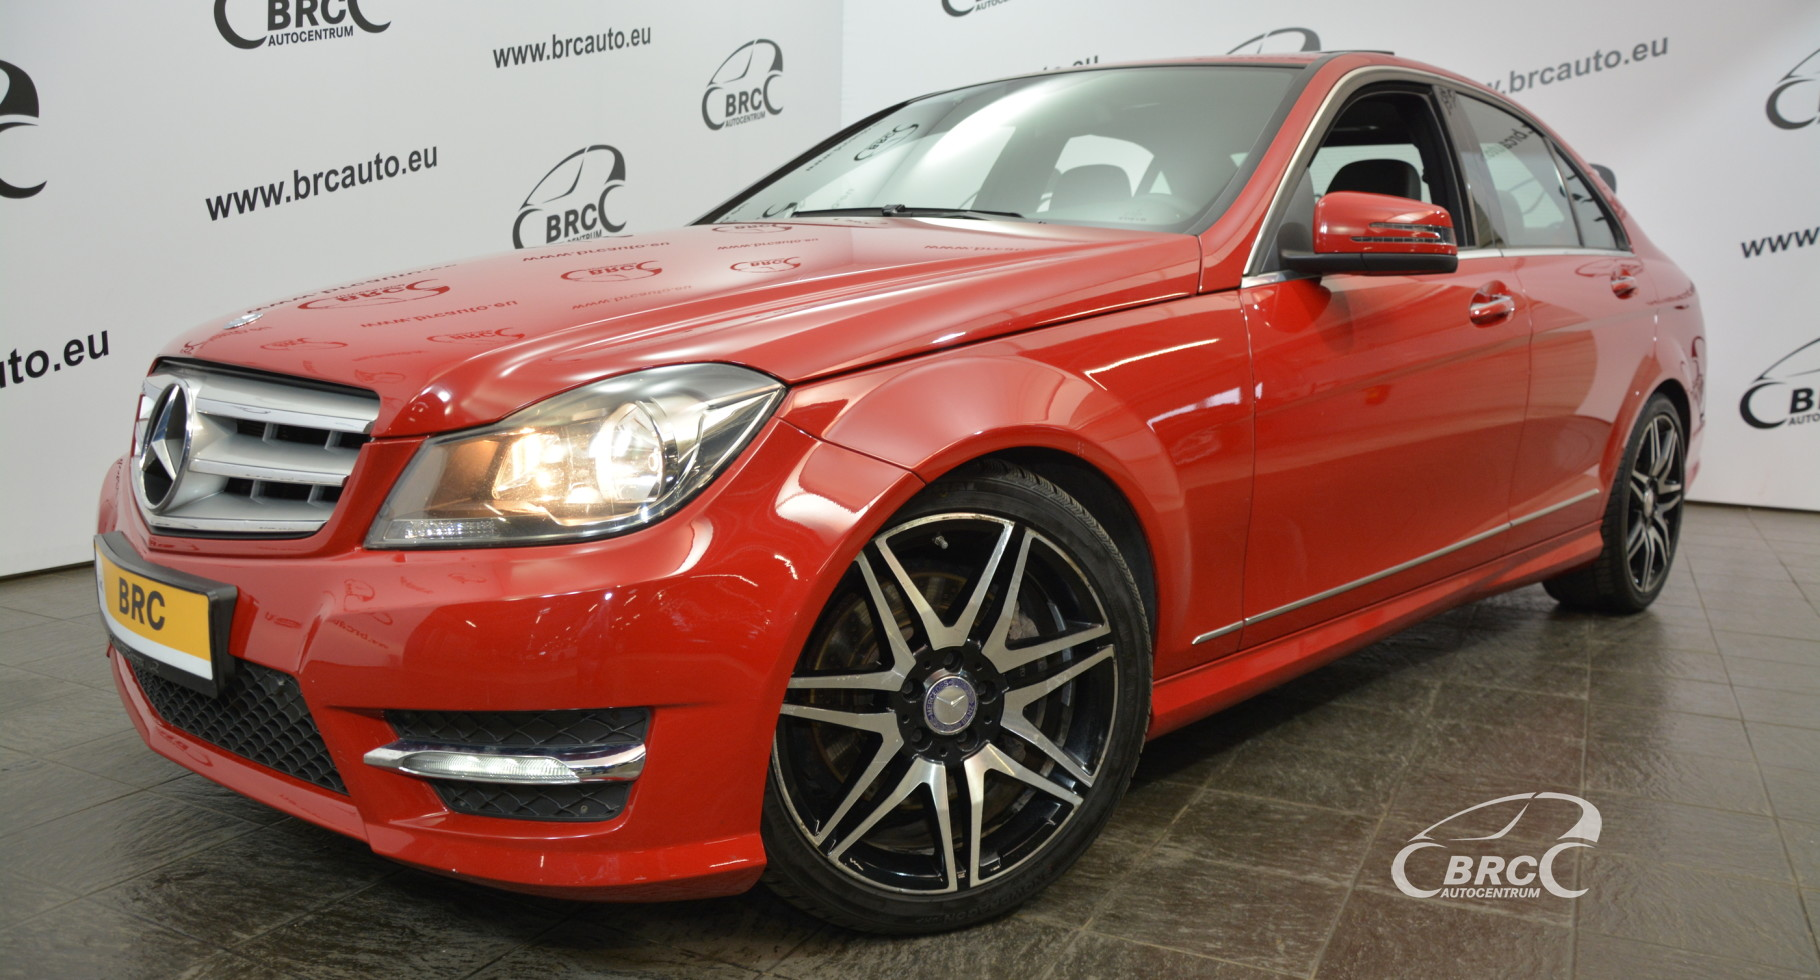 Mercedes-Benz C 300 4 Matic Automatas